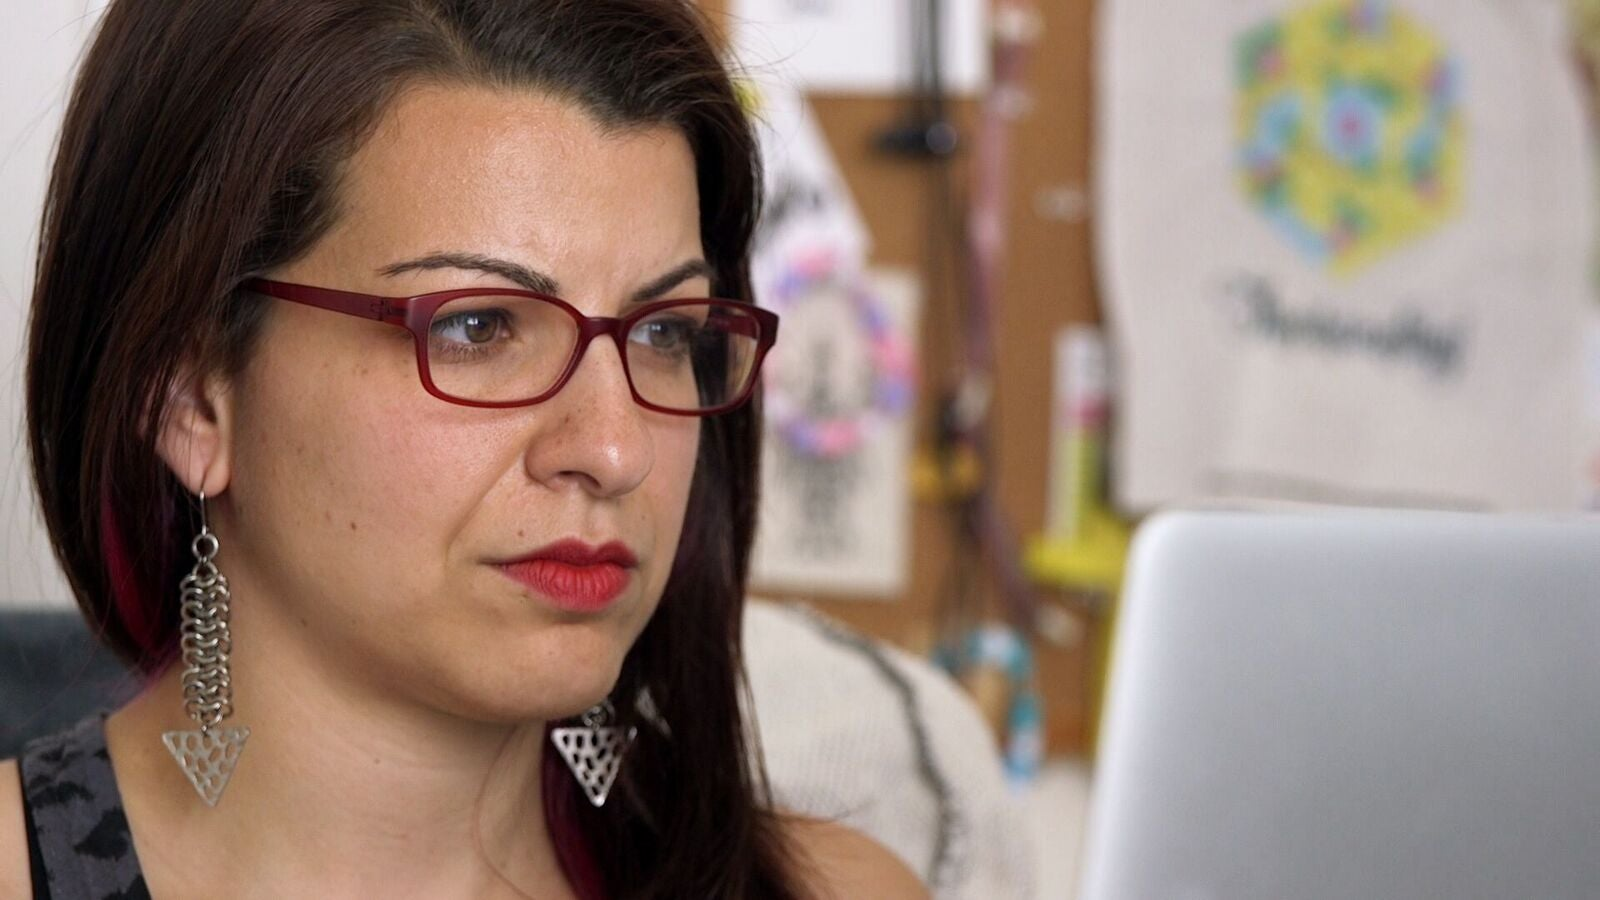 Feminist Frequency founder Anita Sarkeesian, a woman with white skin and dark brown hair wearing magenta glasses, looks at her computer screen.